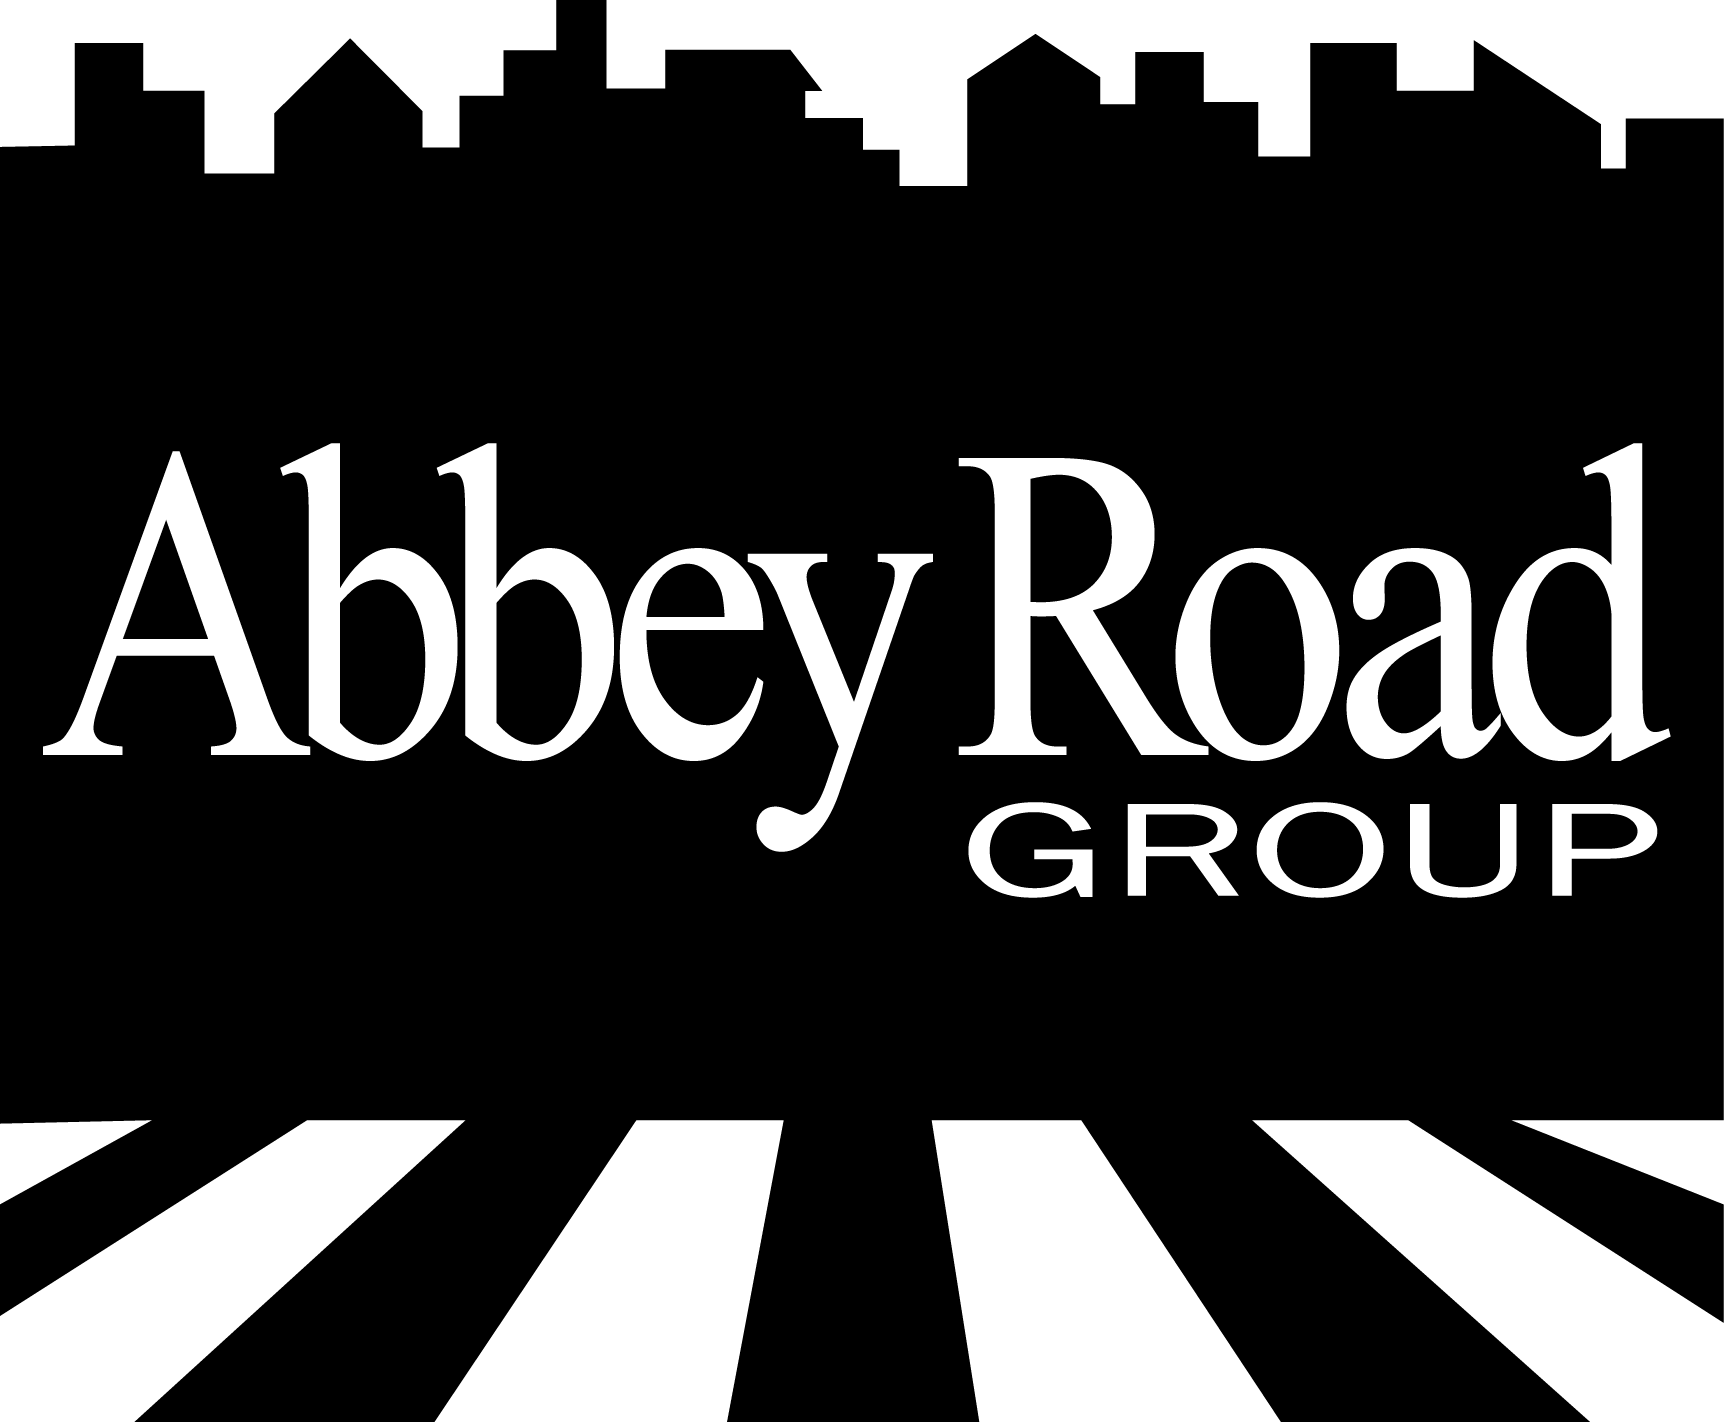 Abbey Road Group